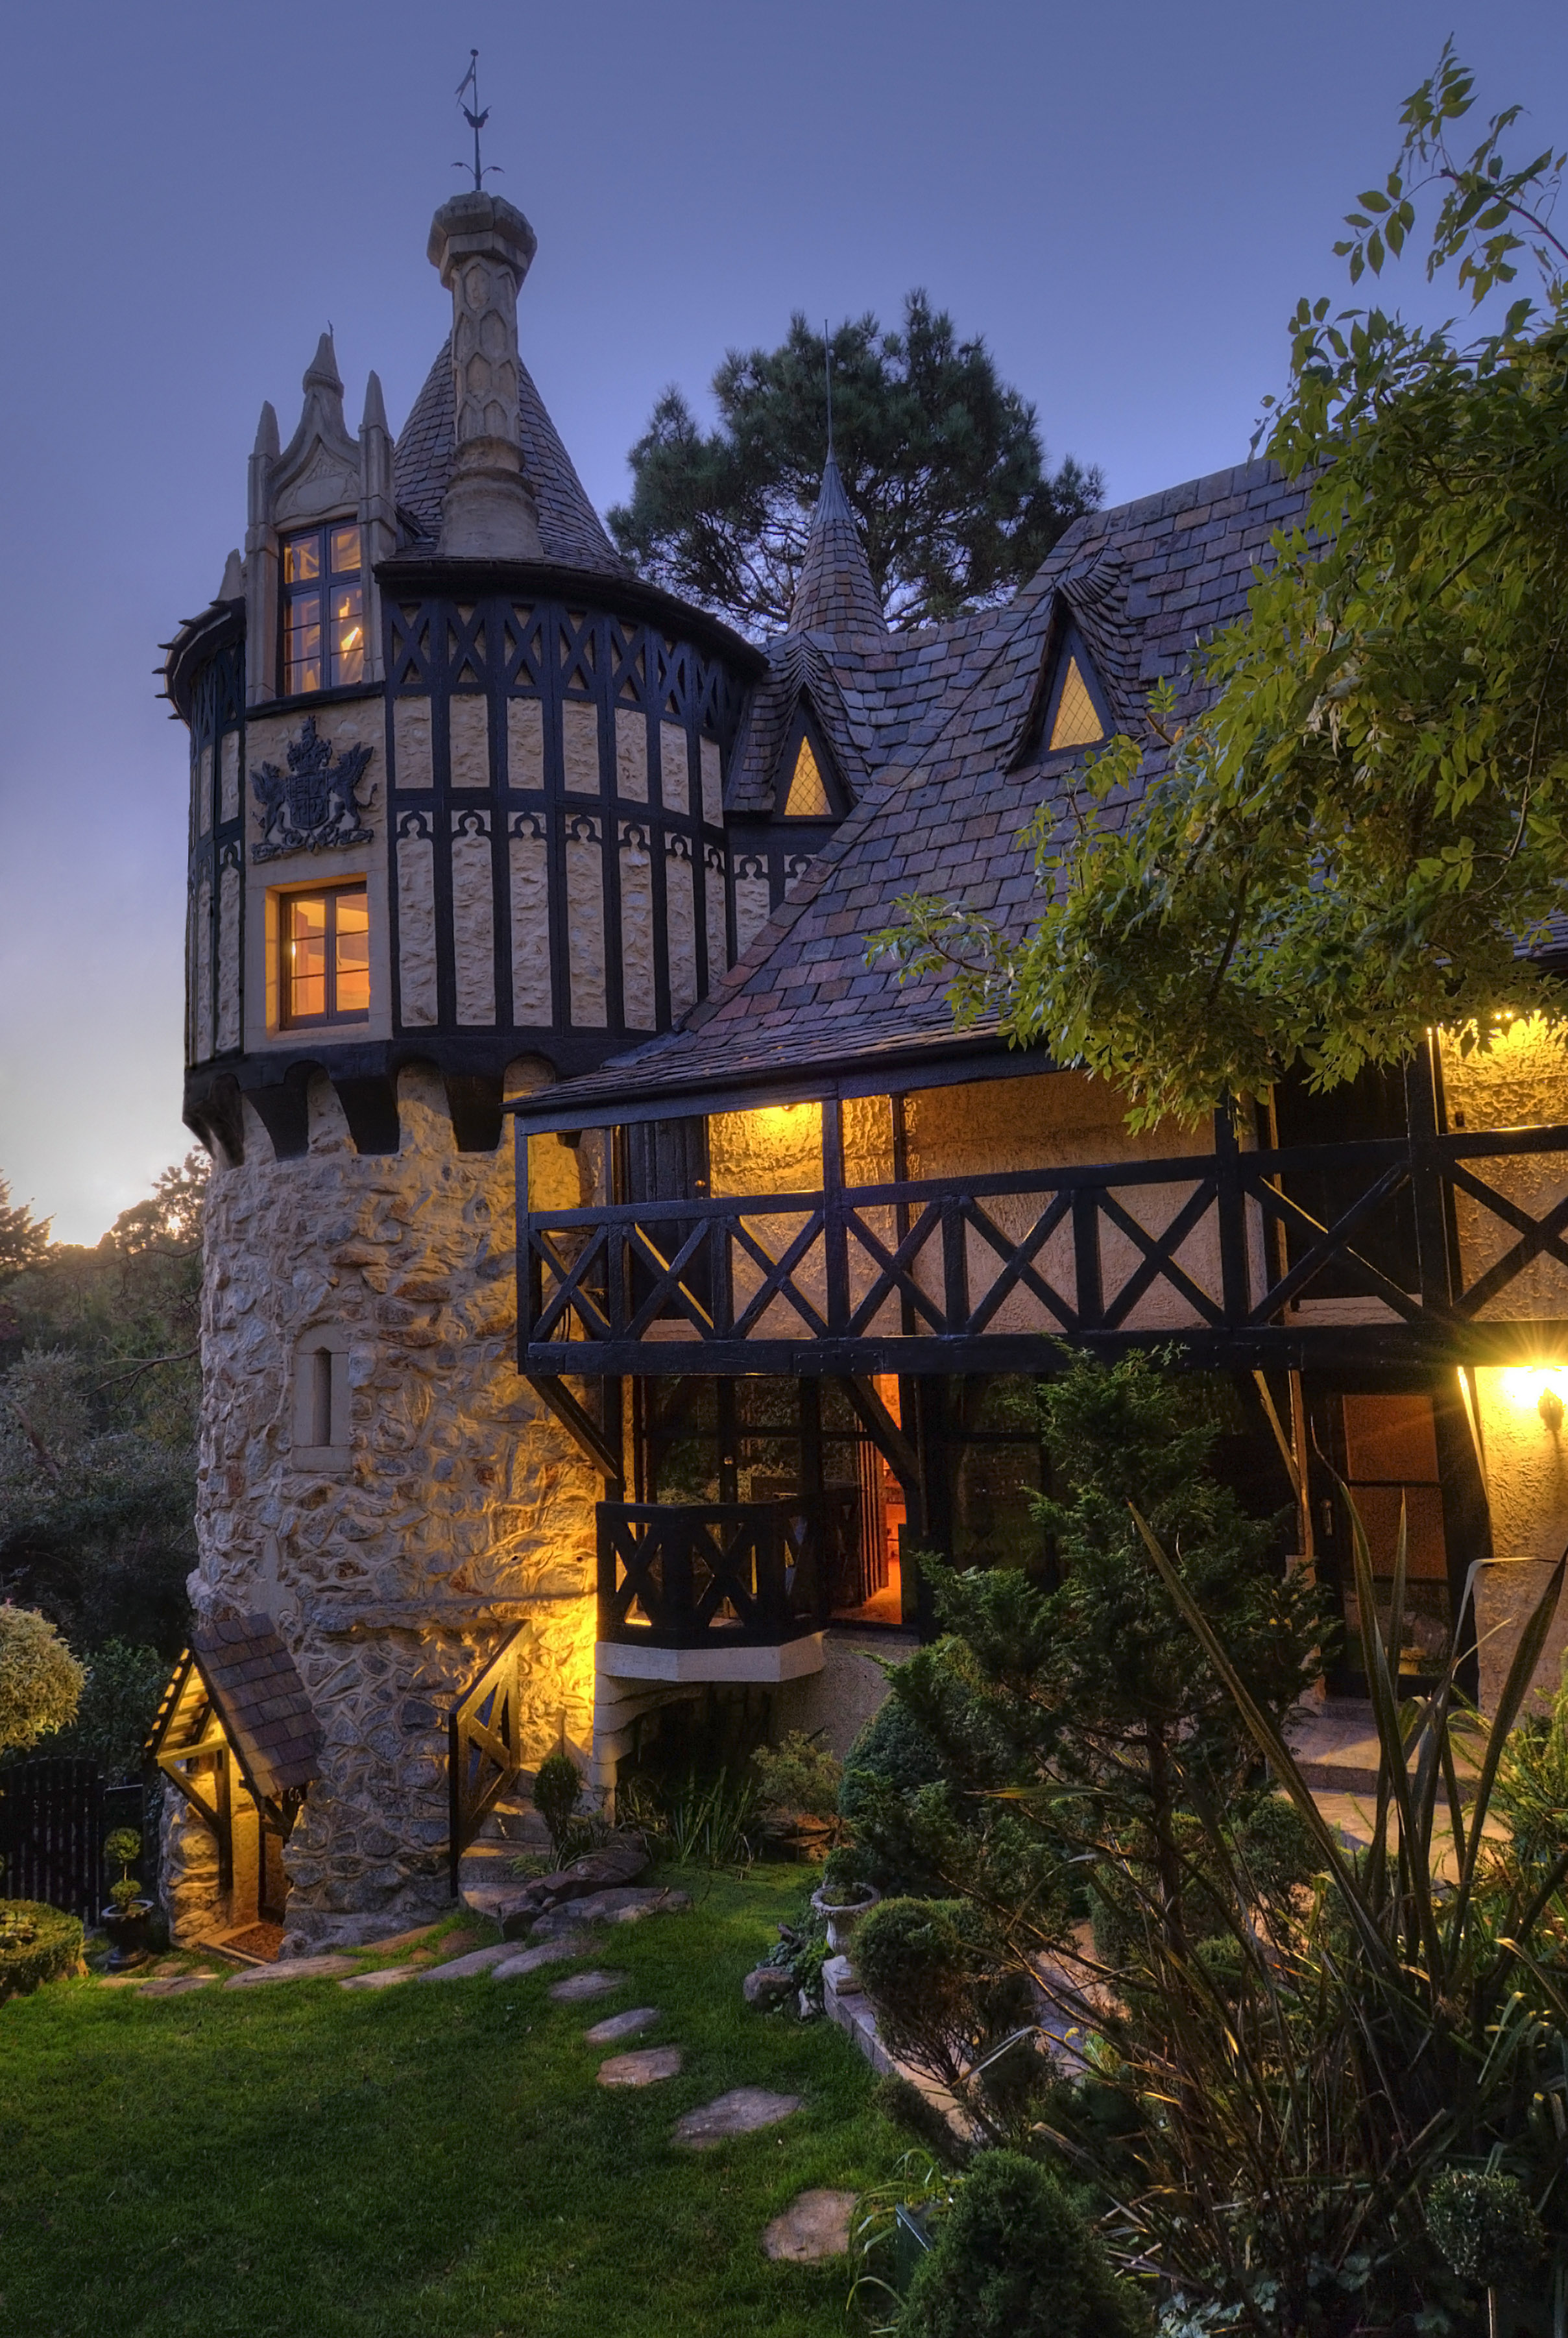 Thorngrove Manor Hotel Happily Ever After